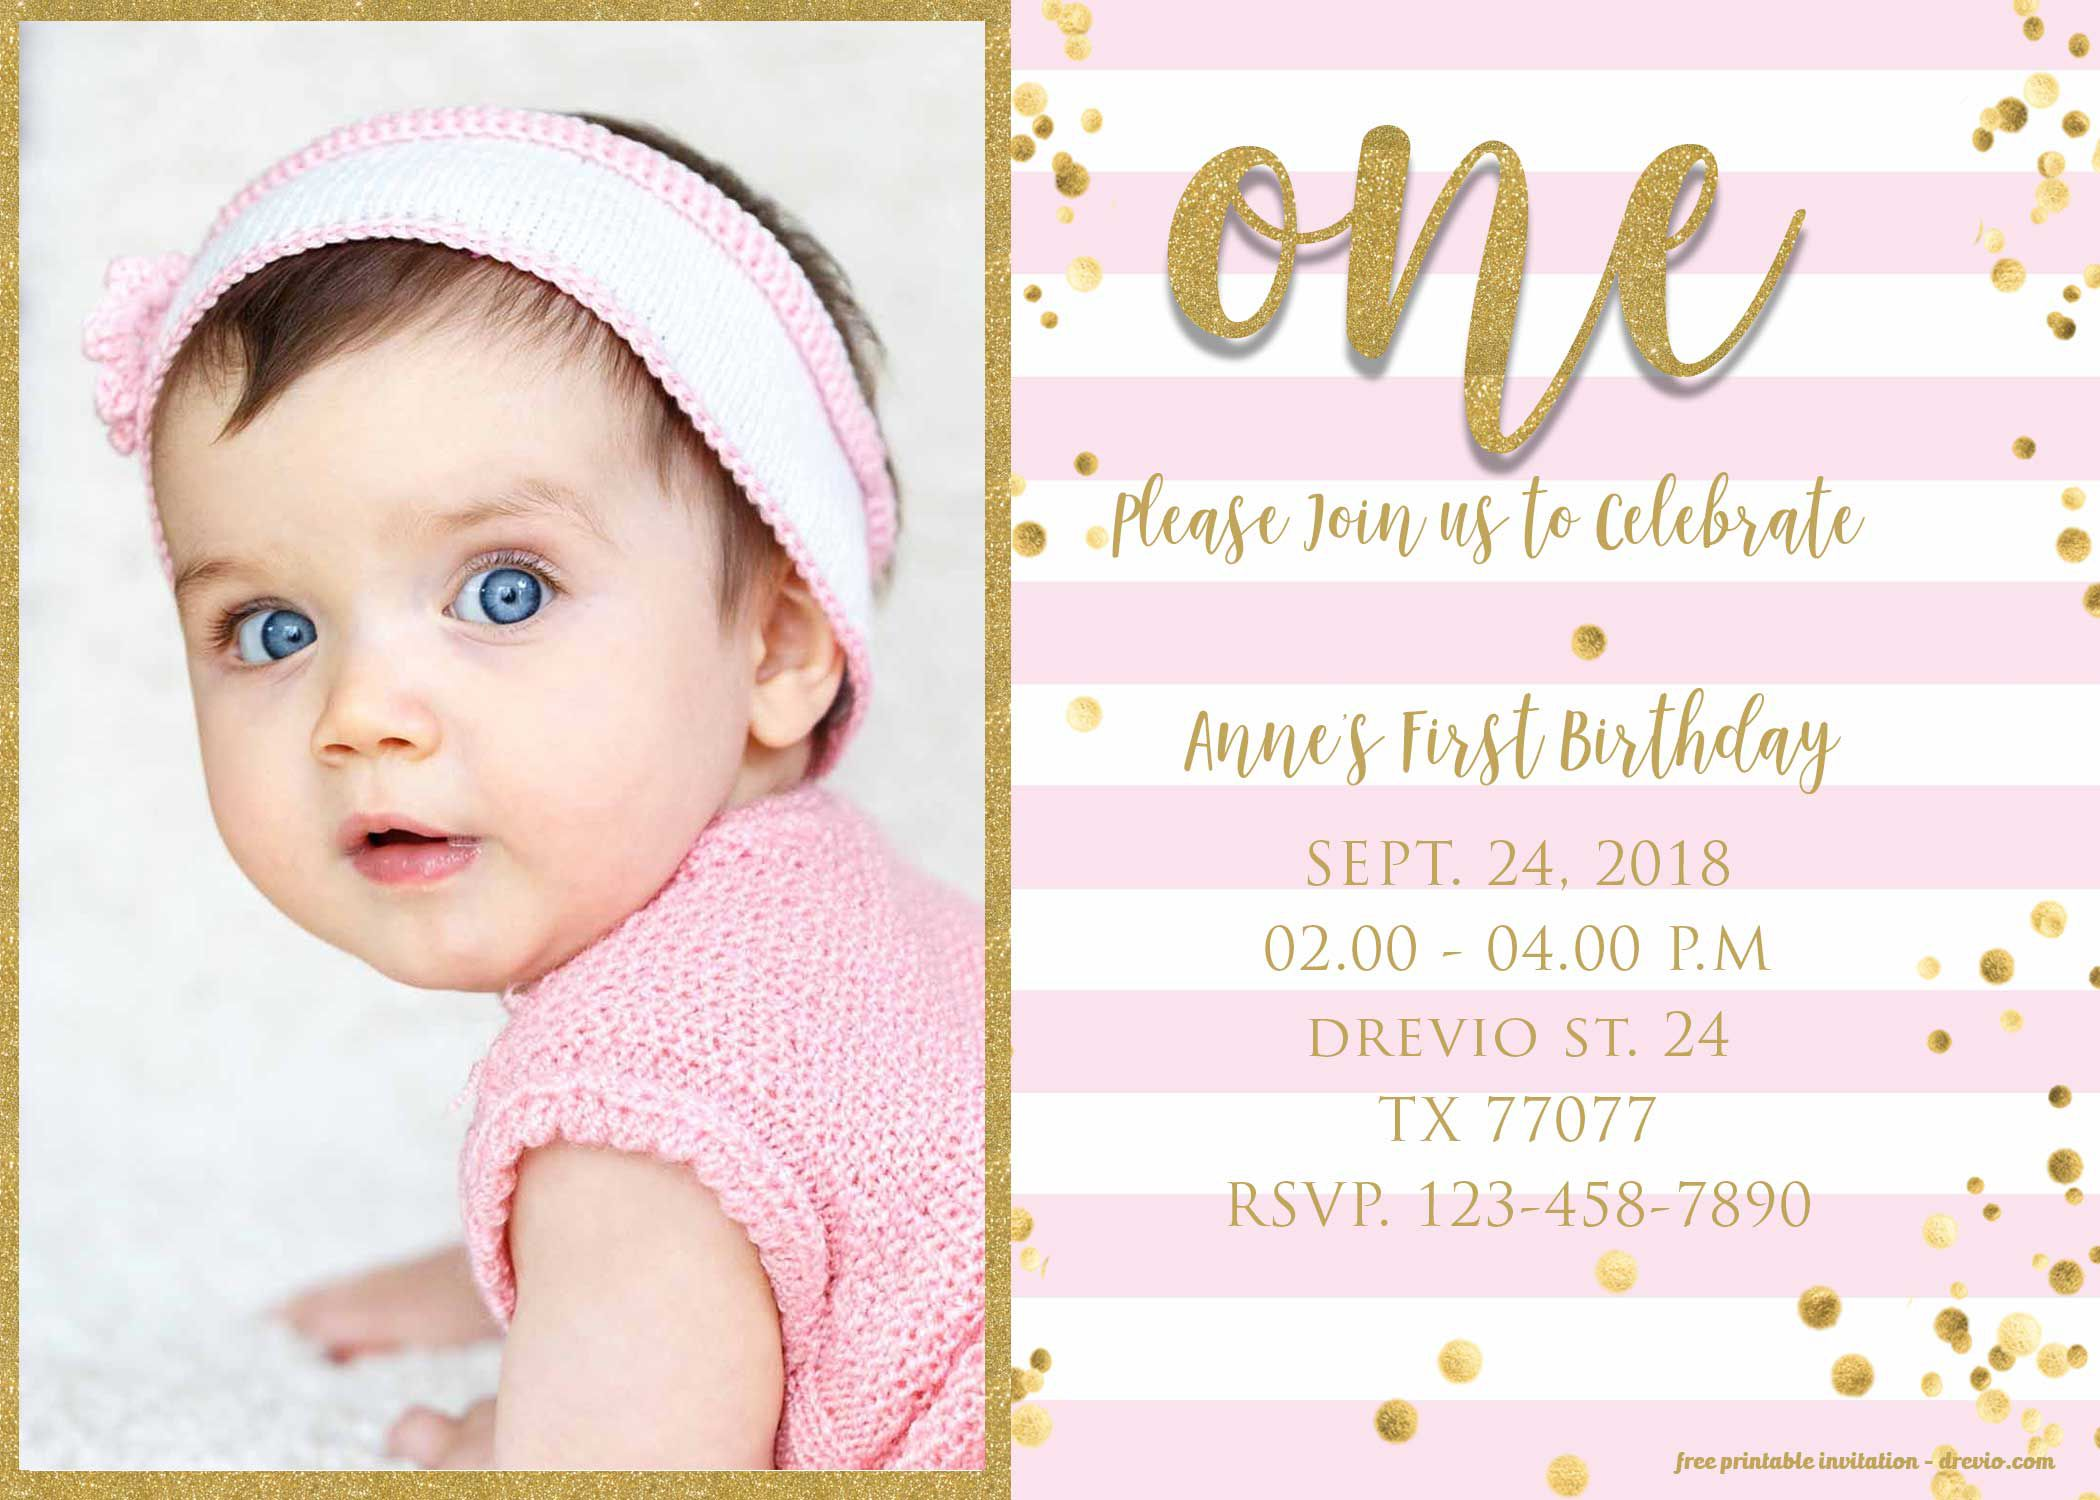 009 Impressive Free 1st Birthday Invitation Template For Word Highest Clarity Full